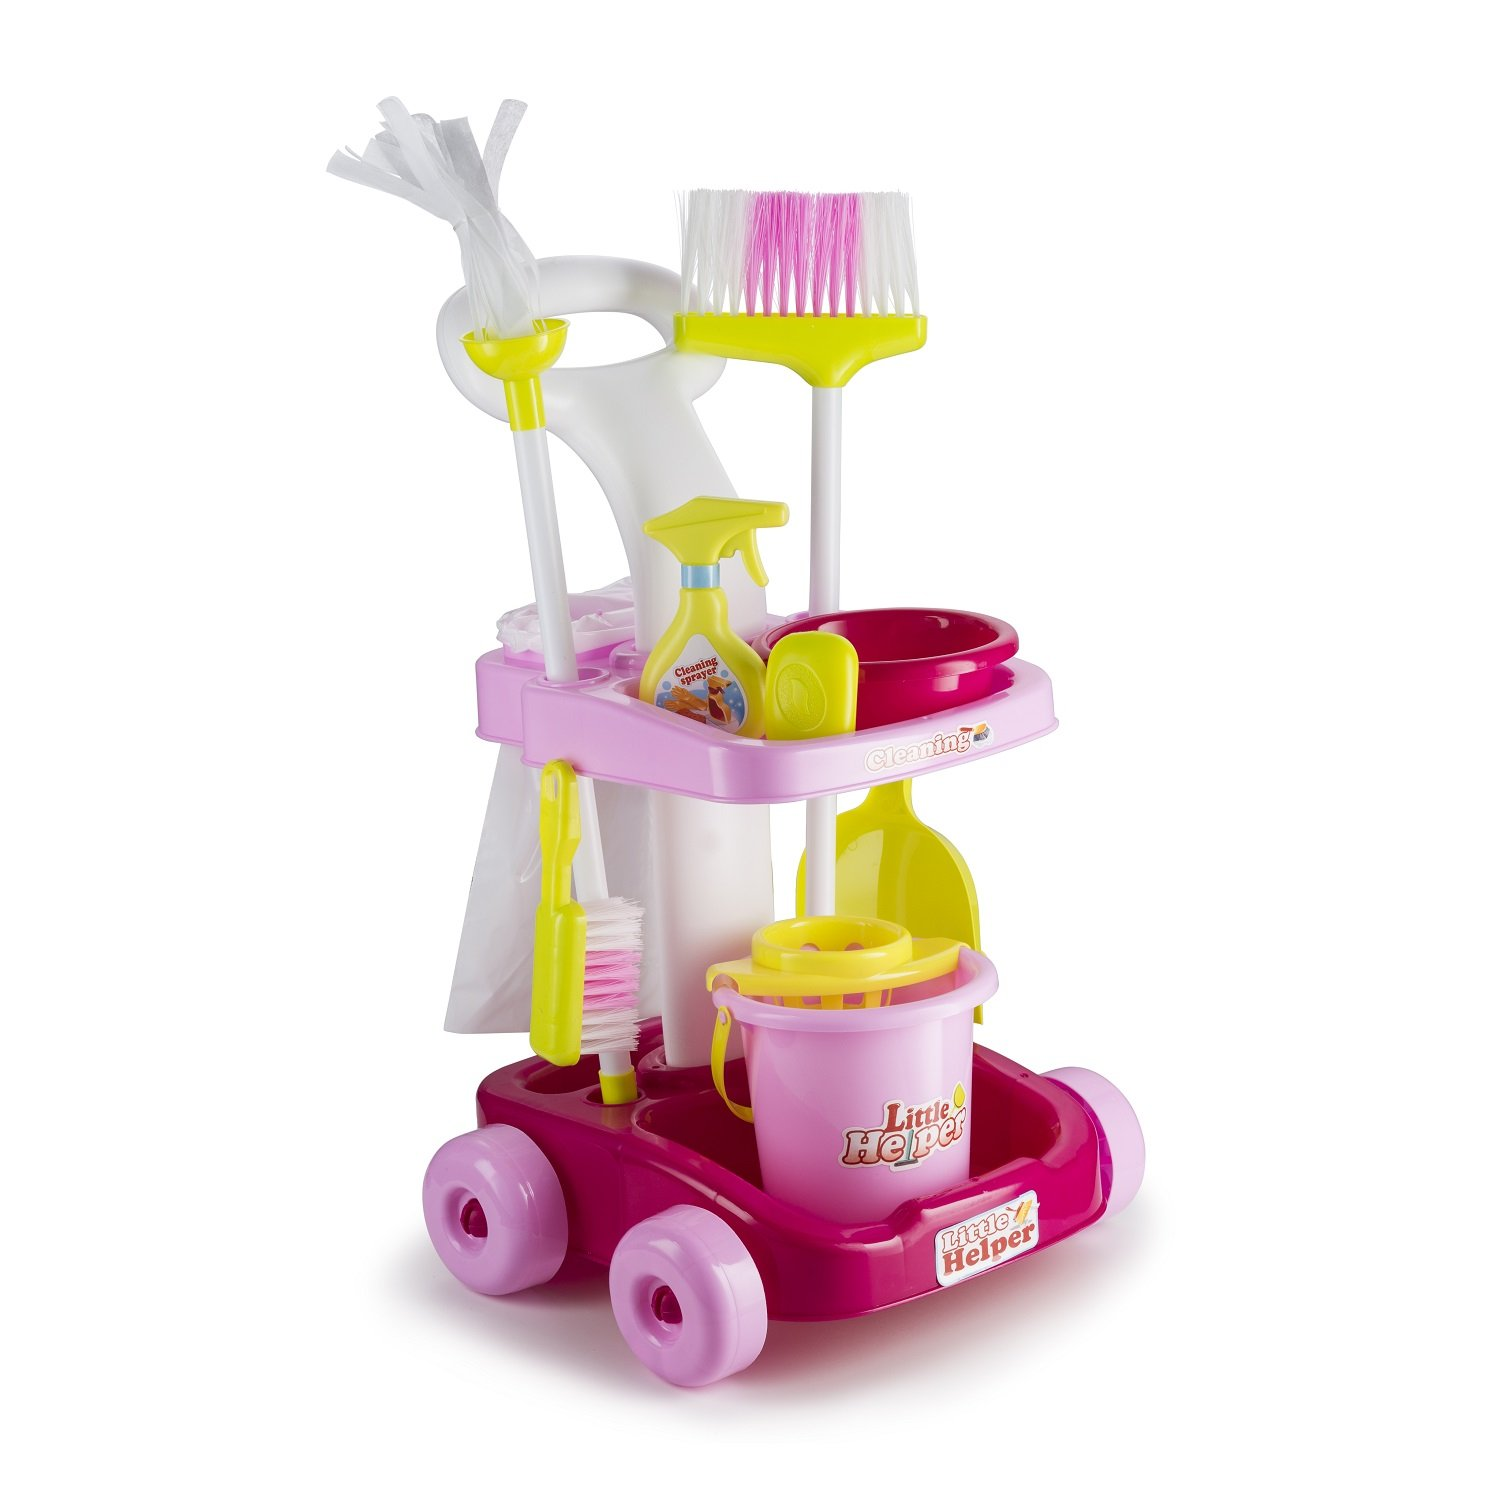 JaxoJoy Housekeeping & Cleaning Trolley Playset – Mini Clean Up Cart for Kids with Mop & Bucket, Broom & Dustpan and Other Play Pretend Toys – Perfect Gift for Ages 3 & Up